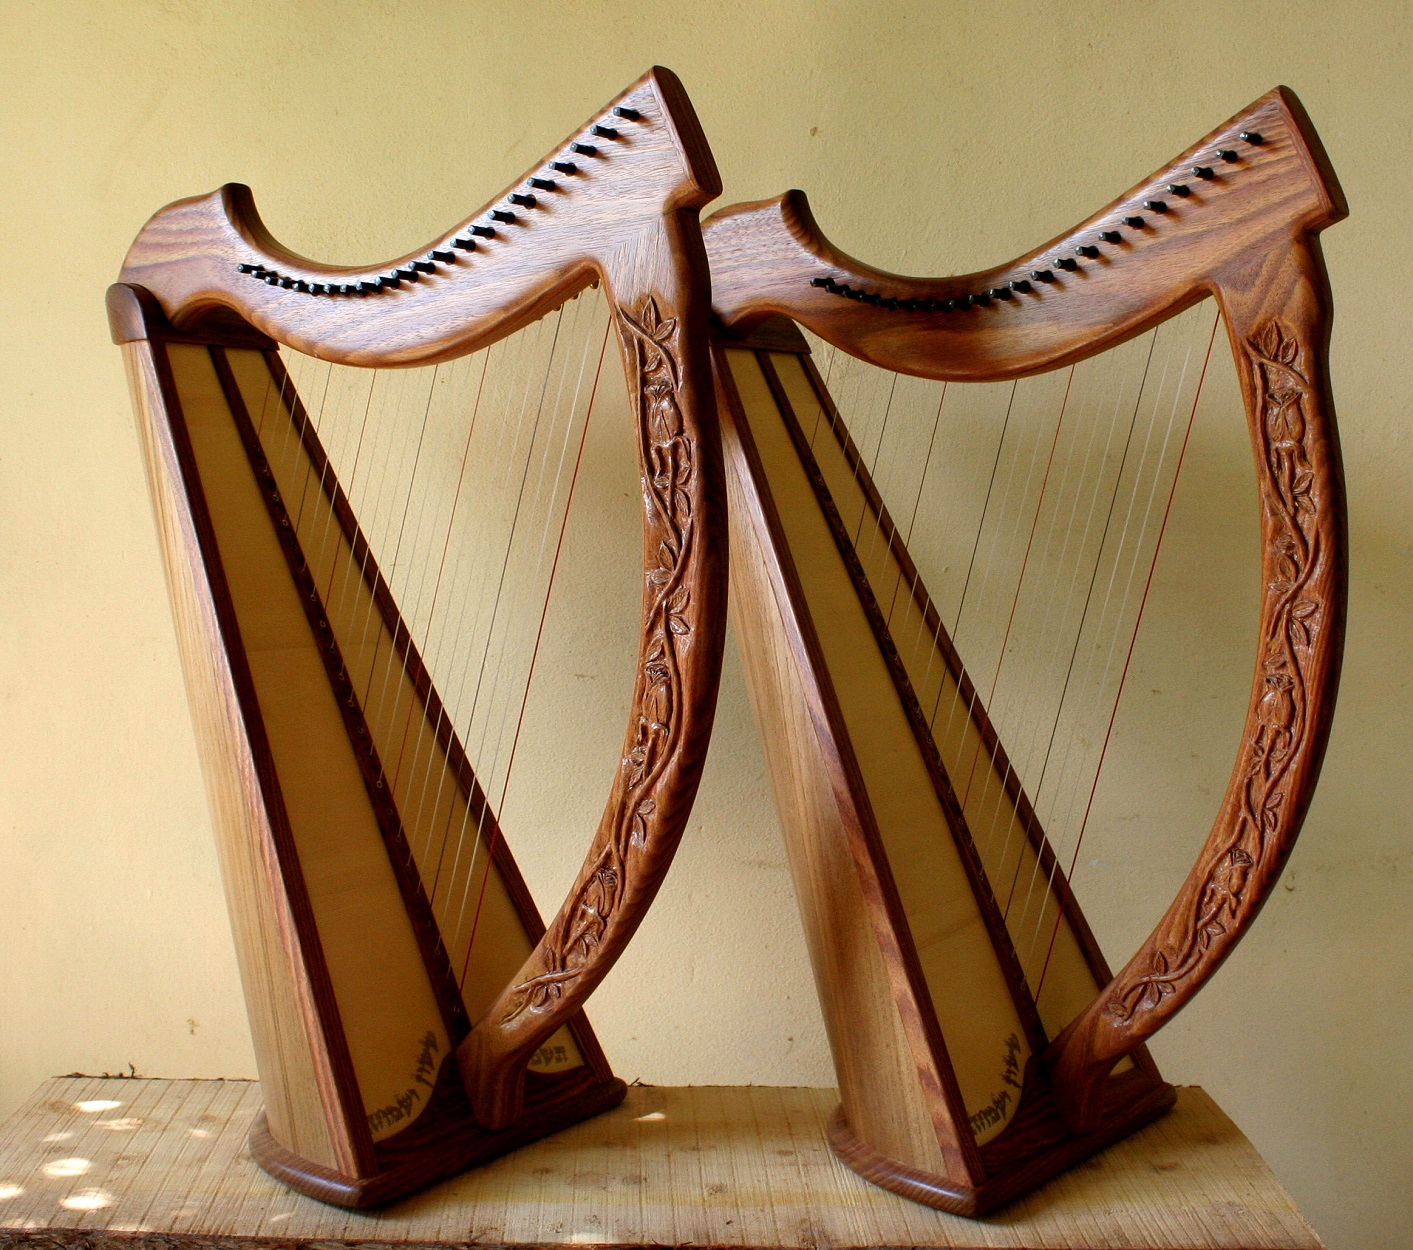 Twin Atara Nevel Harps